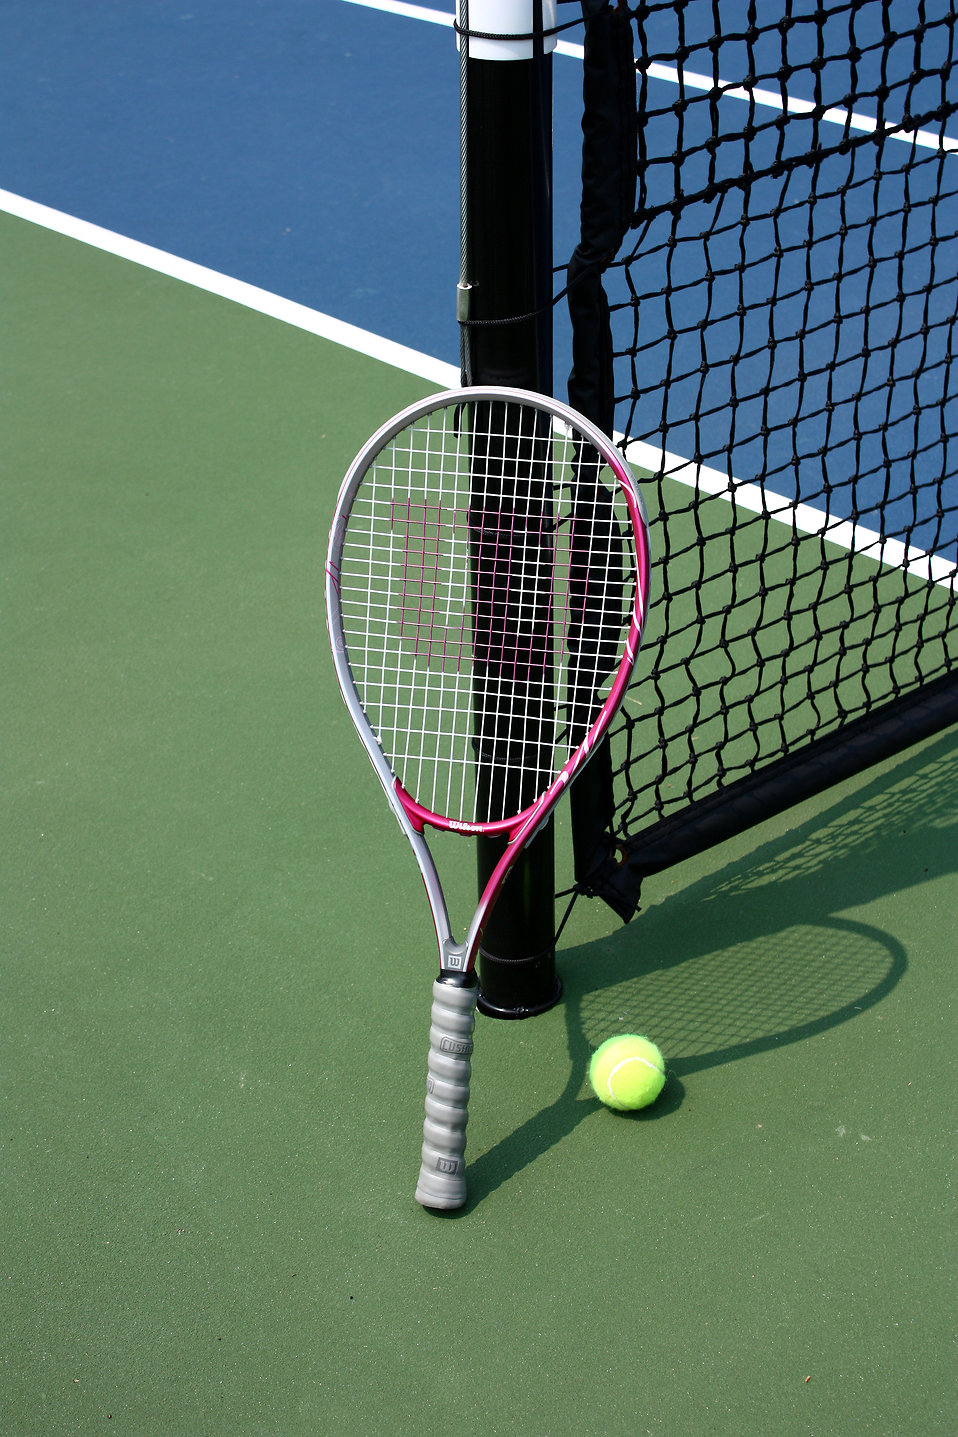 A tennis racquet and ball on a tennis court : Free Stock Photo